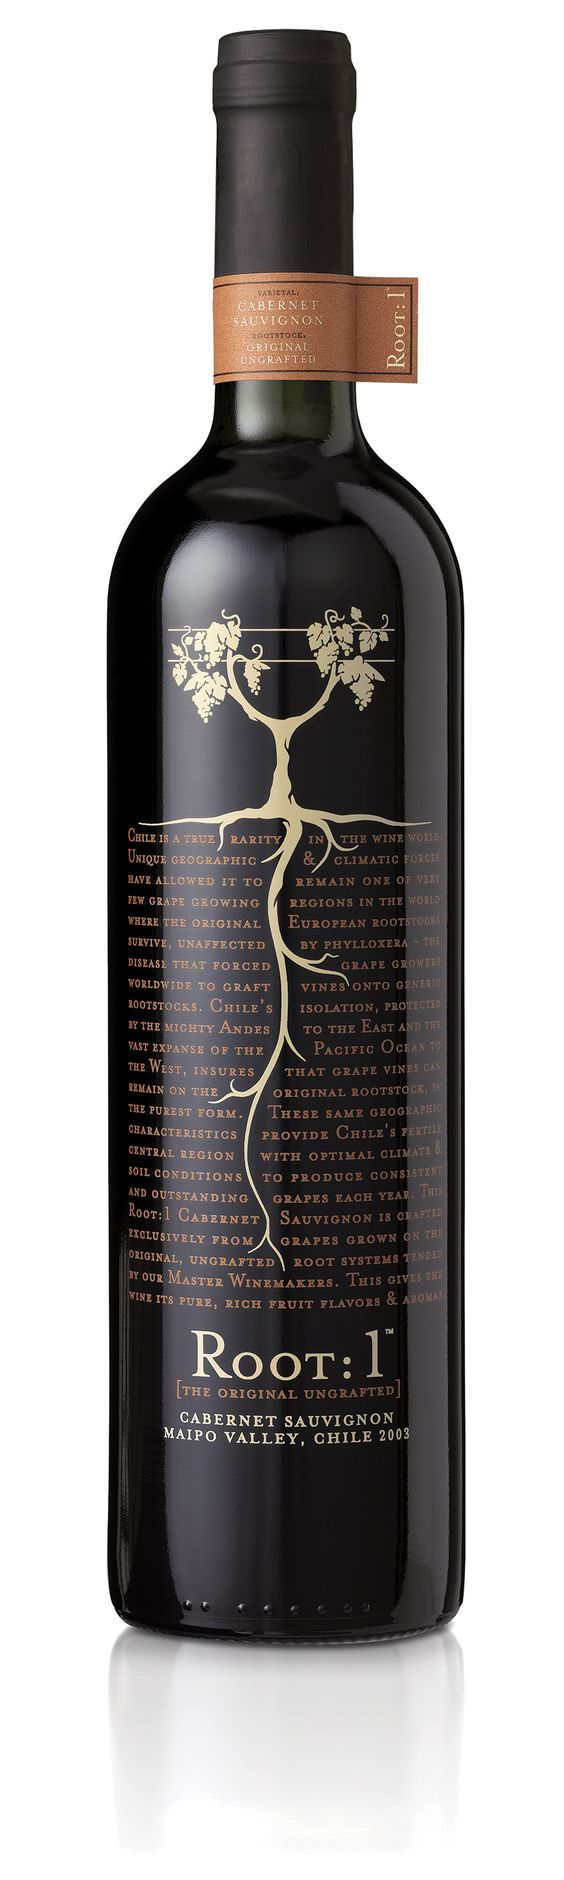 """Root:1 tells the story of the original ungrafted Cabernet Sauvignon rootstock, extinct in Europe and now found only in Chile. The rich history of the rootstock is visually linked to the final glass of wine, an image of which is hidden to the vine. As you read the story, the root leads you down to where it begins, beneath the soil."" - Root: 1, Turner Duckworth"